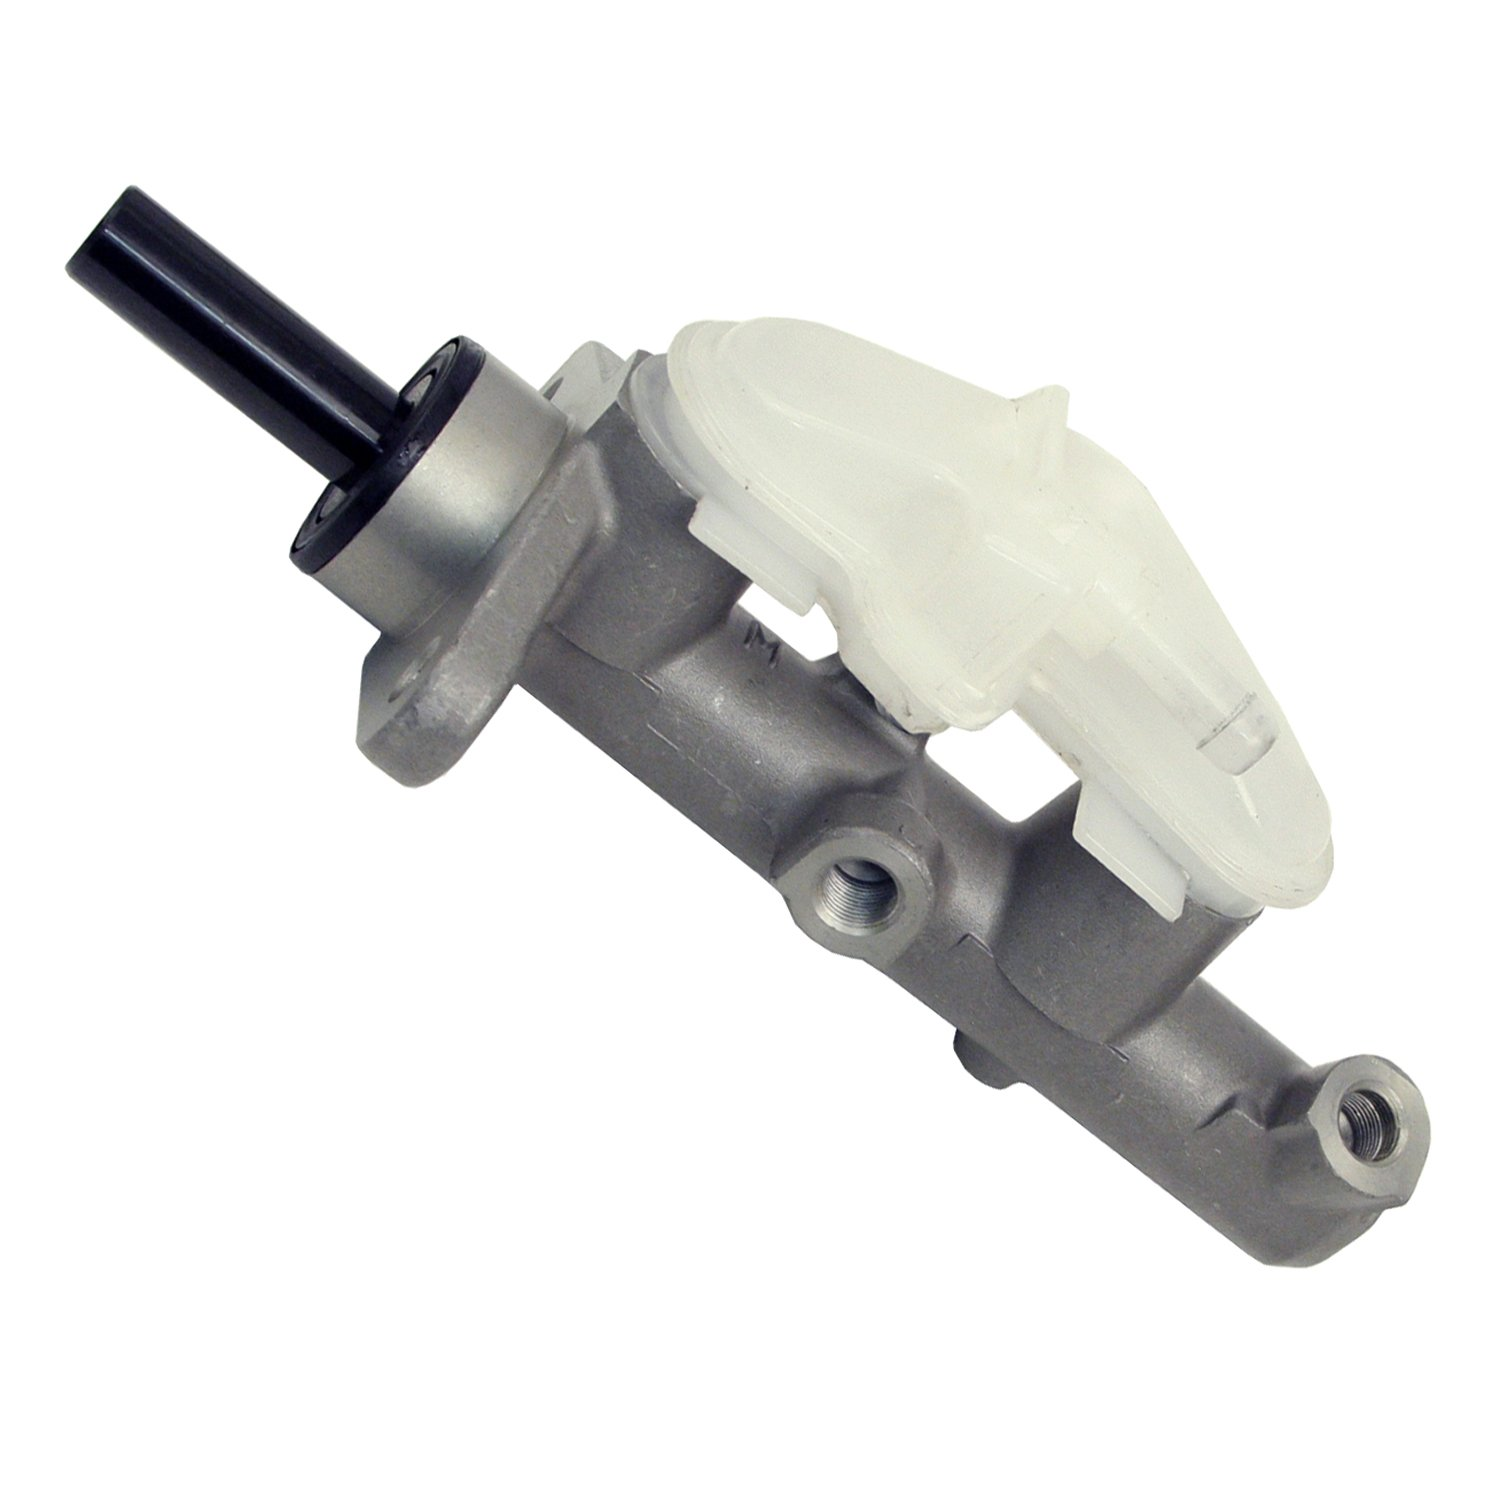 Beck Arnley 072-9796 New Brake Master Cylinder